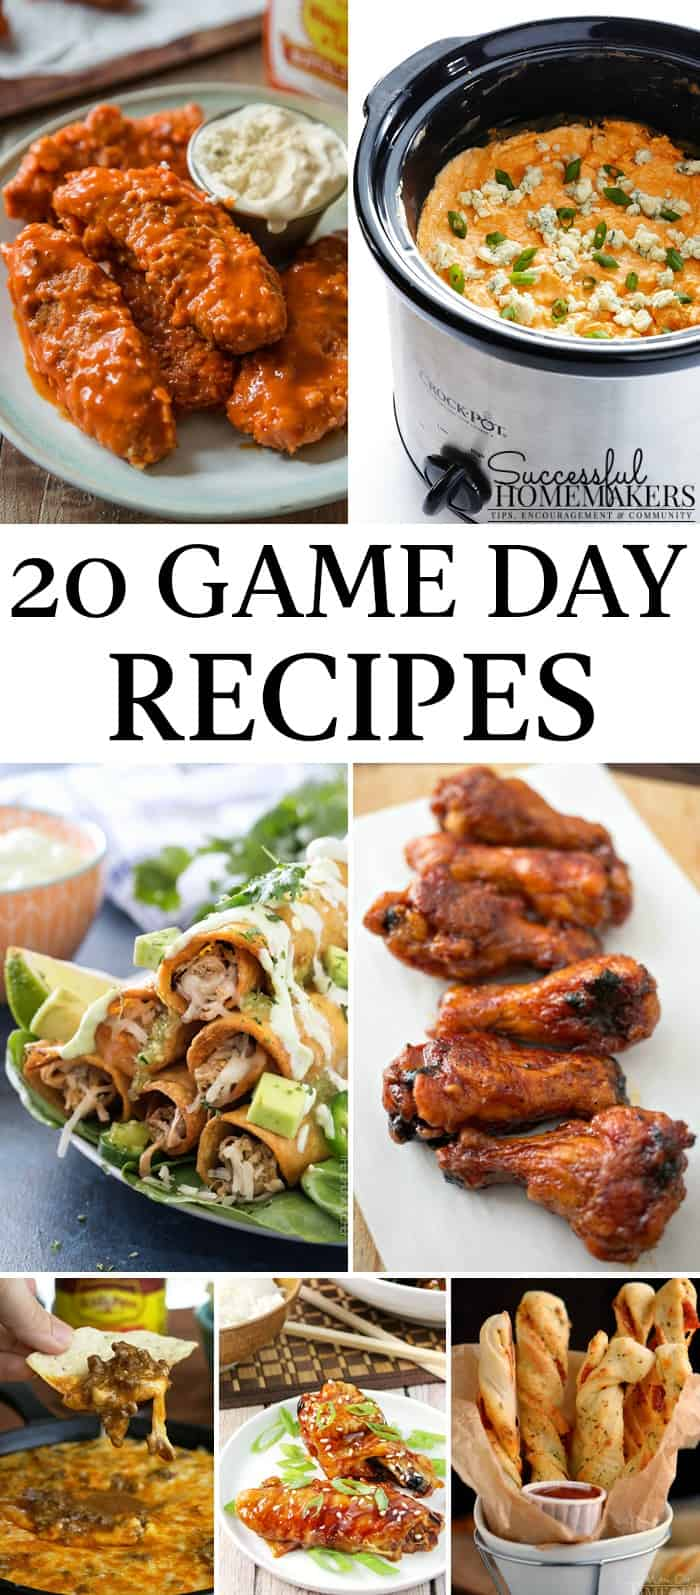 game day recipe round up with 20 recipes for you to make!